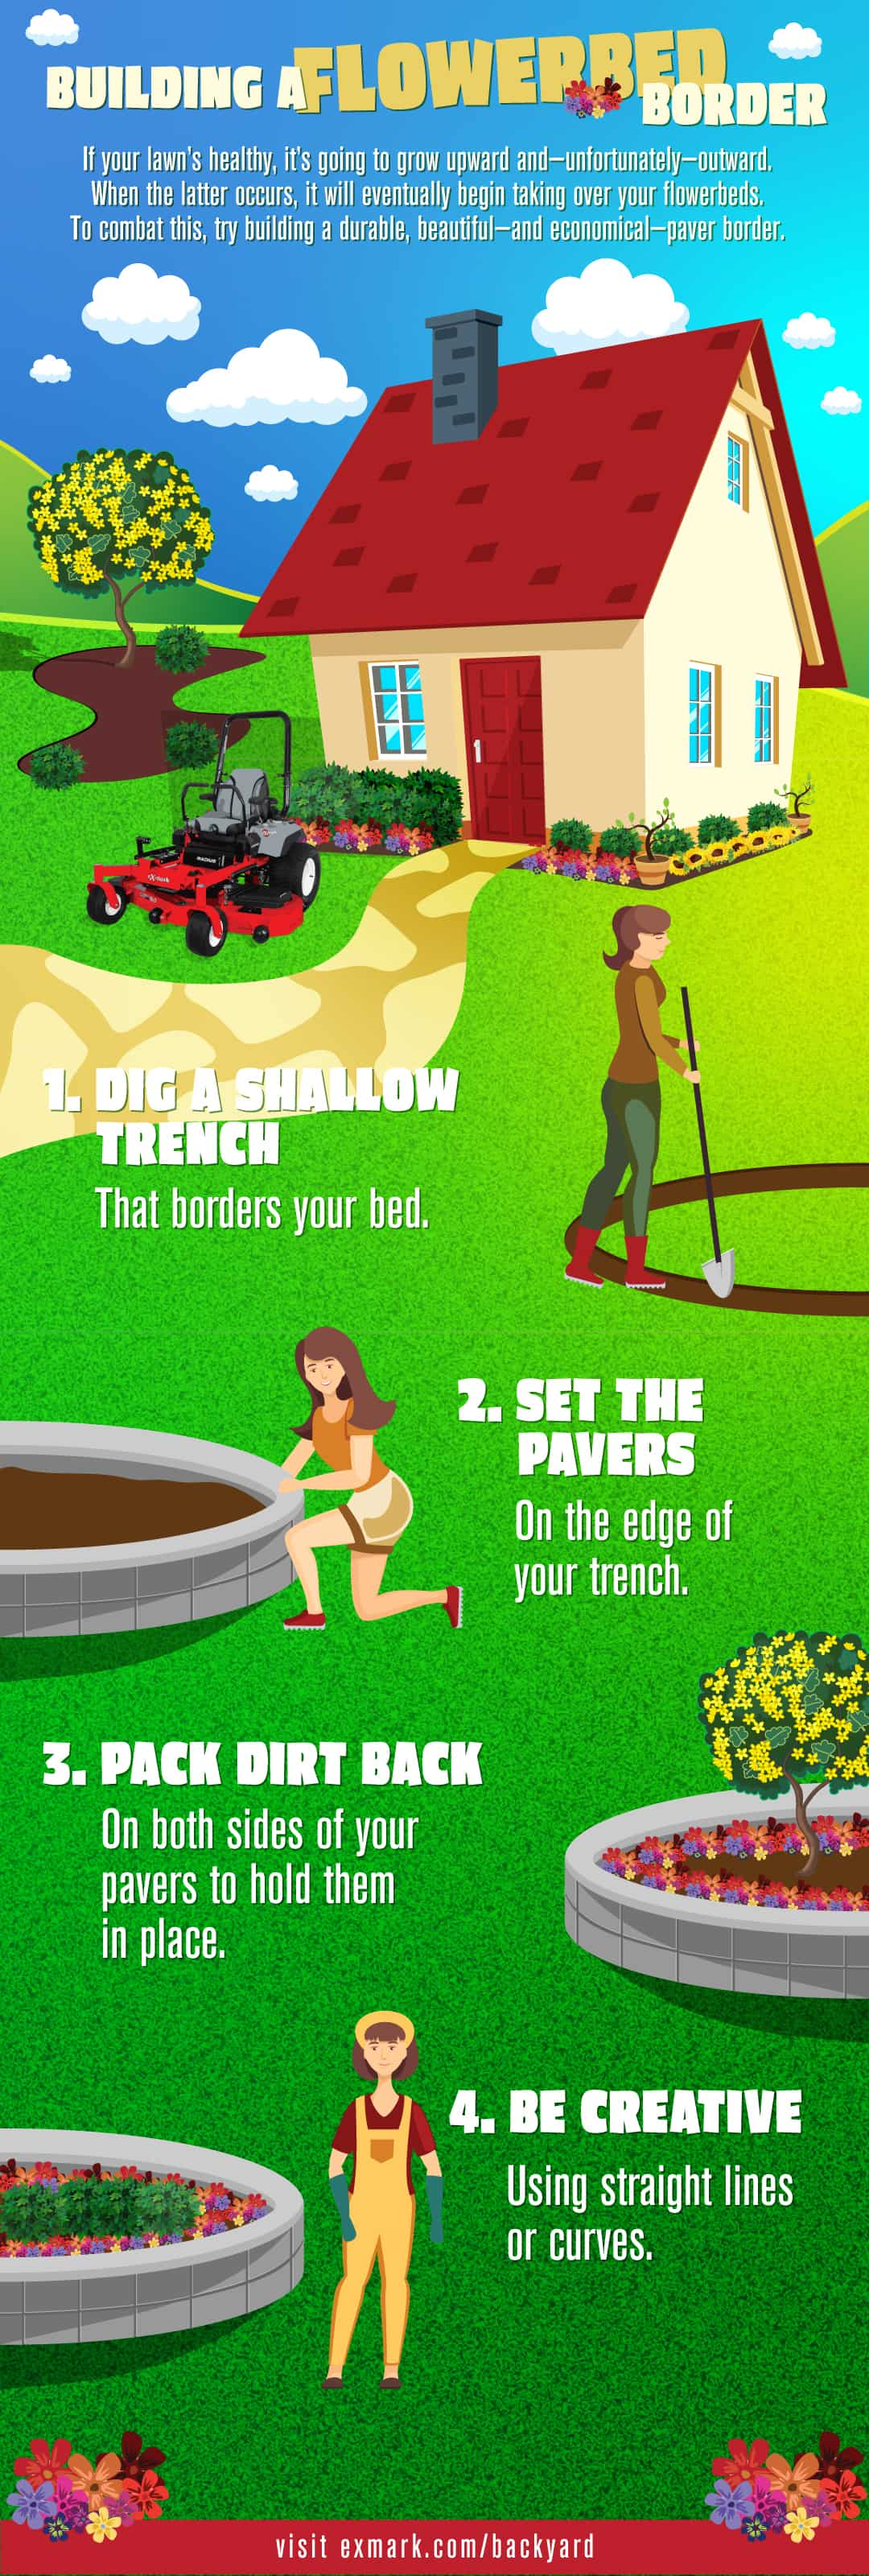 Infographic about how to build a flowerbed border from pavers.